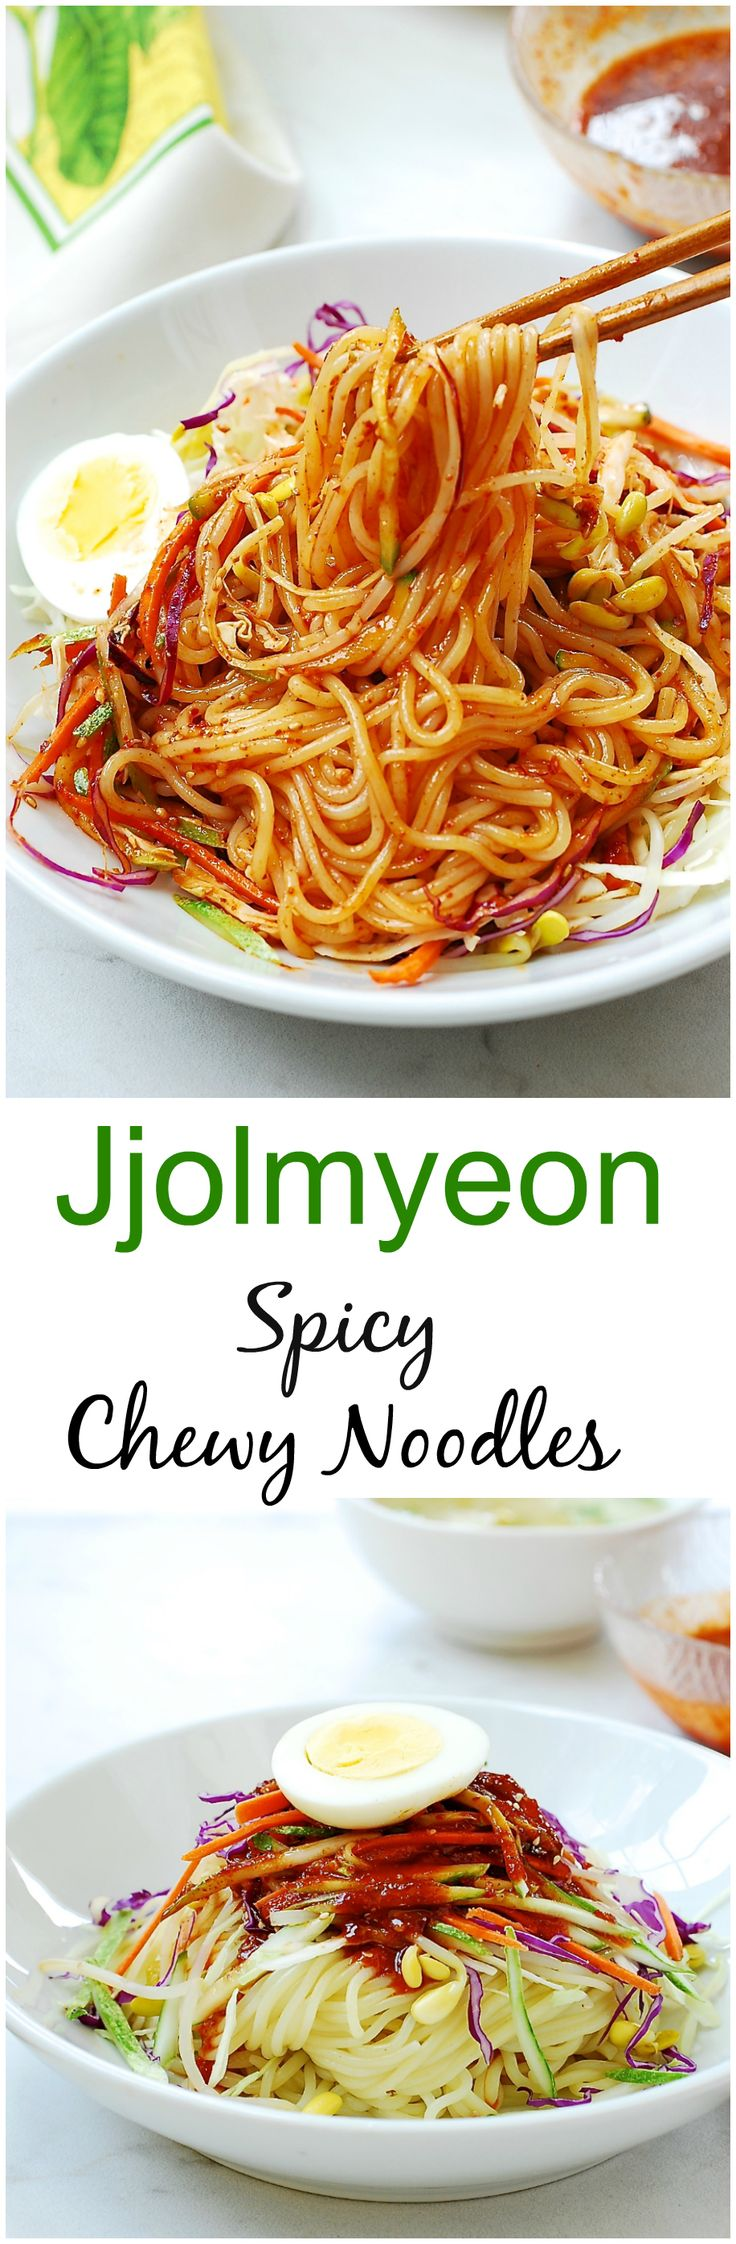 Jjolmyeon - Pleasantly chewy noodles in a spicy, sweet, and tangy gochujang sauce!